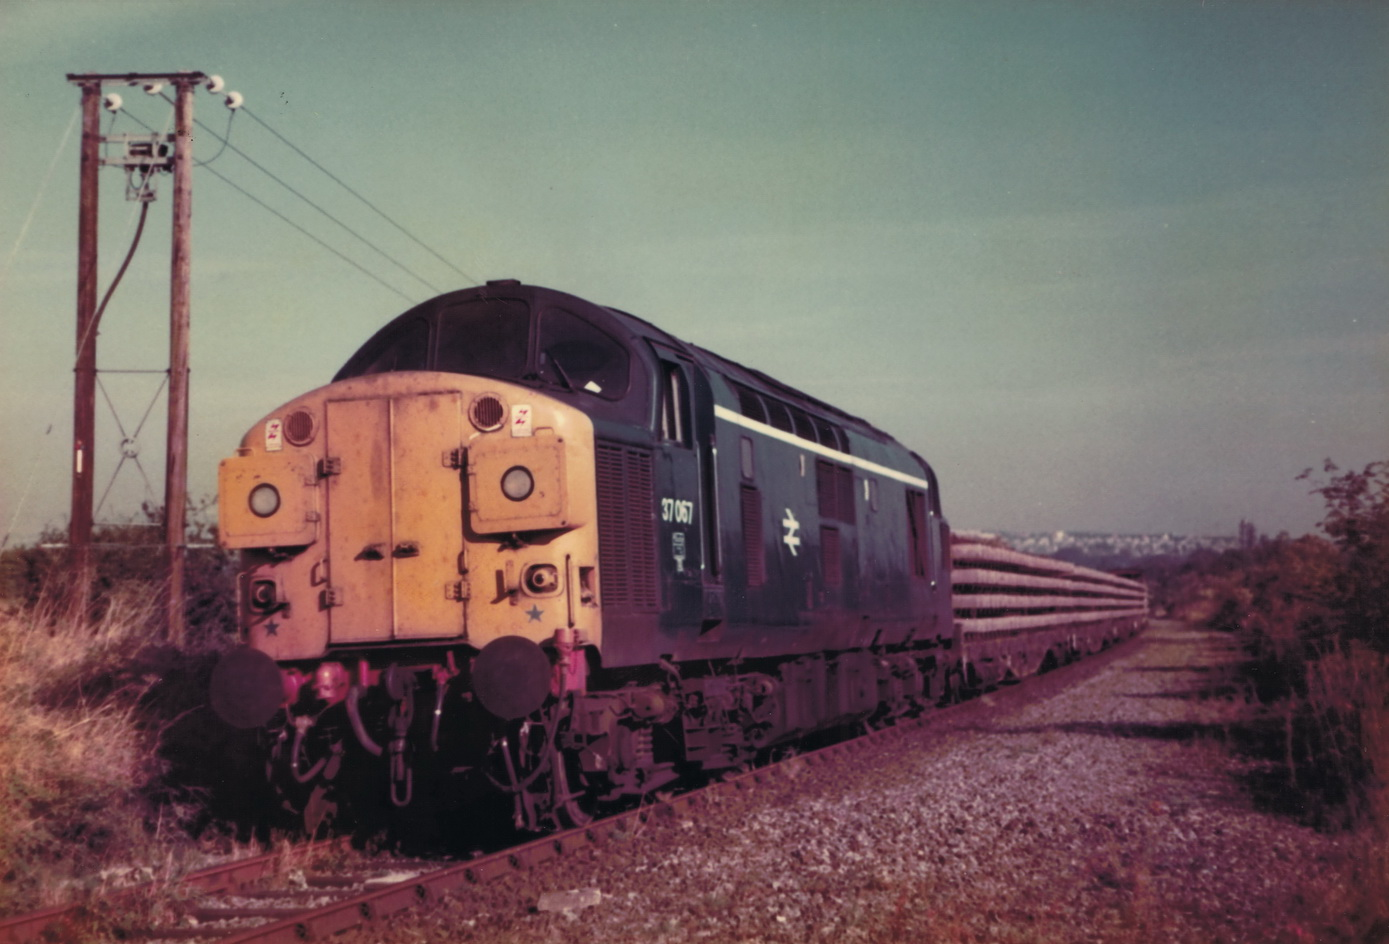 37067 at the rear of a track lifting train at the site of South Pelaw Junction on 6 October 1985. Photo Authors Collection